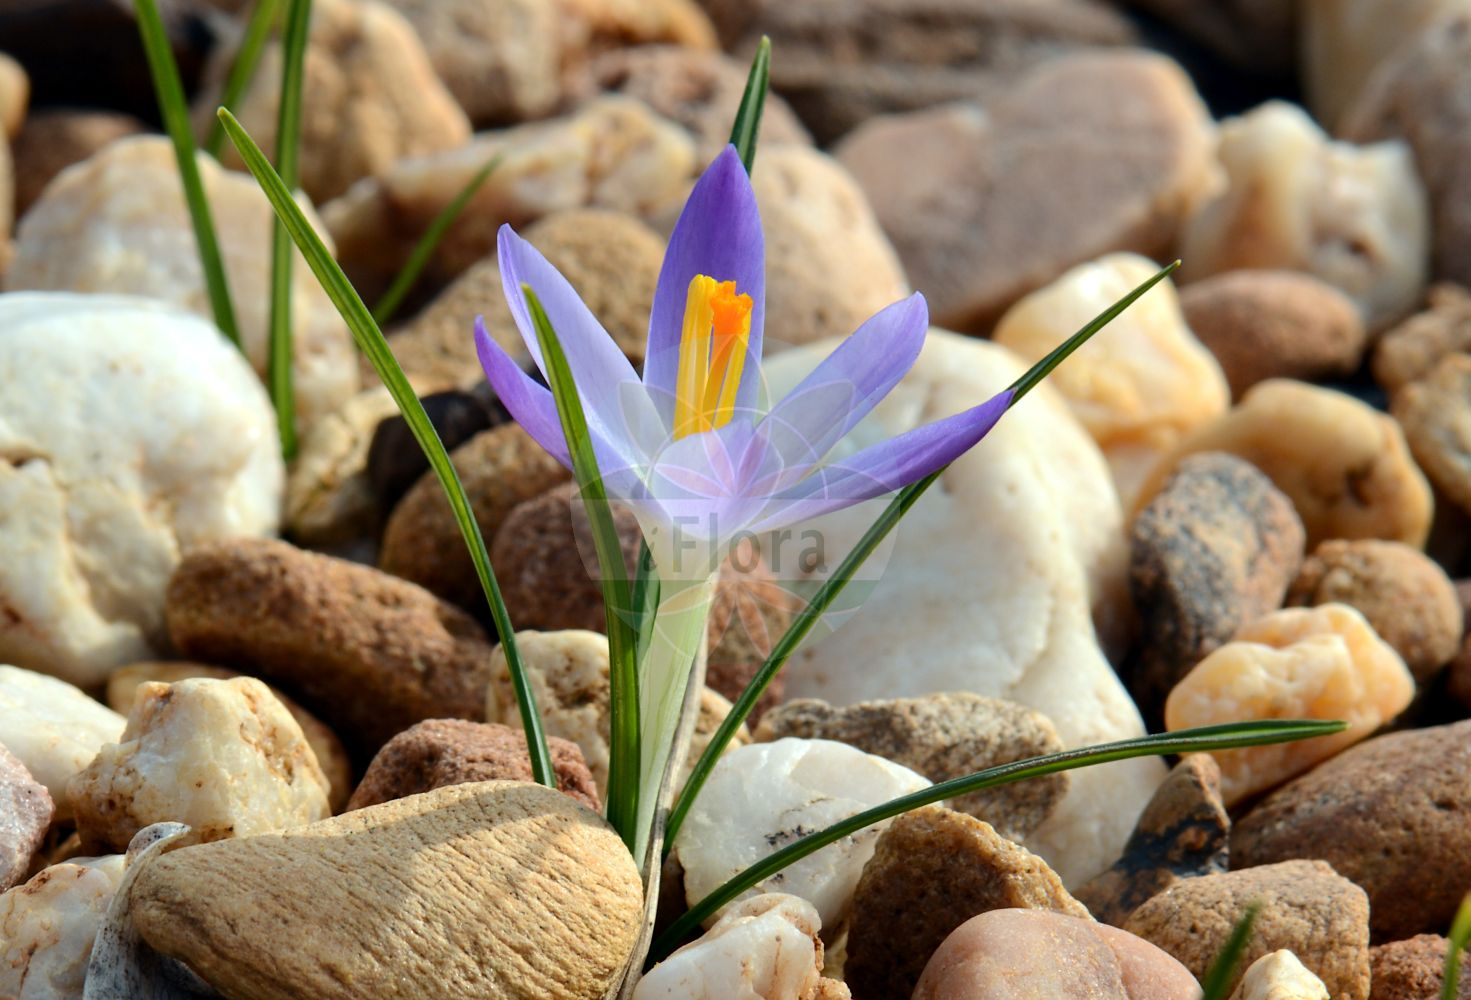 Foto von Crocus minimus. Das Bild zeigt Blatt und Bluete. Das Foto wurde in Mainz, Rheinland-Pfalz, Deutschland aufgenommen. ---- Photo of Crocus minimus.The image is showing leaf and flower.The picture was taken in Mainz, Rhineland-Palatinate, Germany. (Crocus minimus,Bulbocodium elongatum,Crocus insularis,Crocus nanus,Ixia elongata,Romulea elongata,Trichonema elongatum,Crocus,Krokus,Crocus,Iridaceae,Schwertliliengewaechse,Iris family,Blatt,Bluete,leaf,flower)